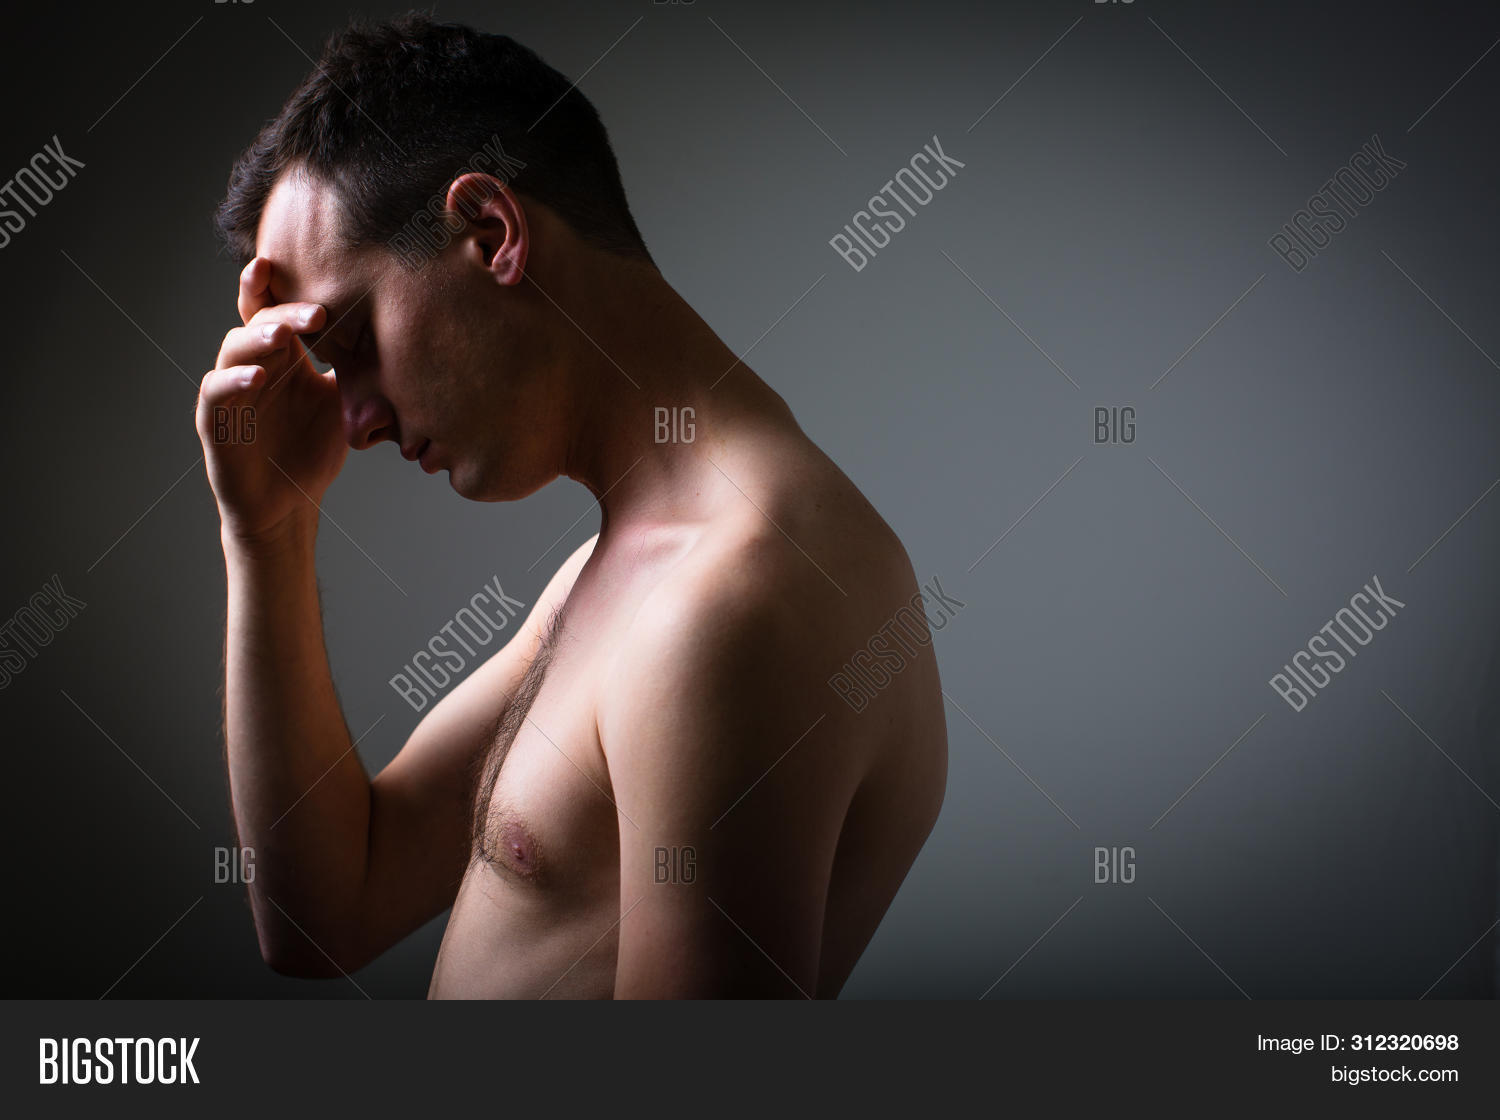 Depressed young man going through a rough patch in his life - suffering from mental exhaustion/anxie